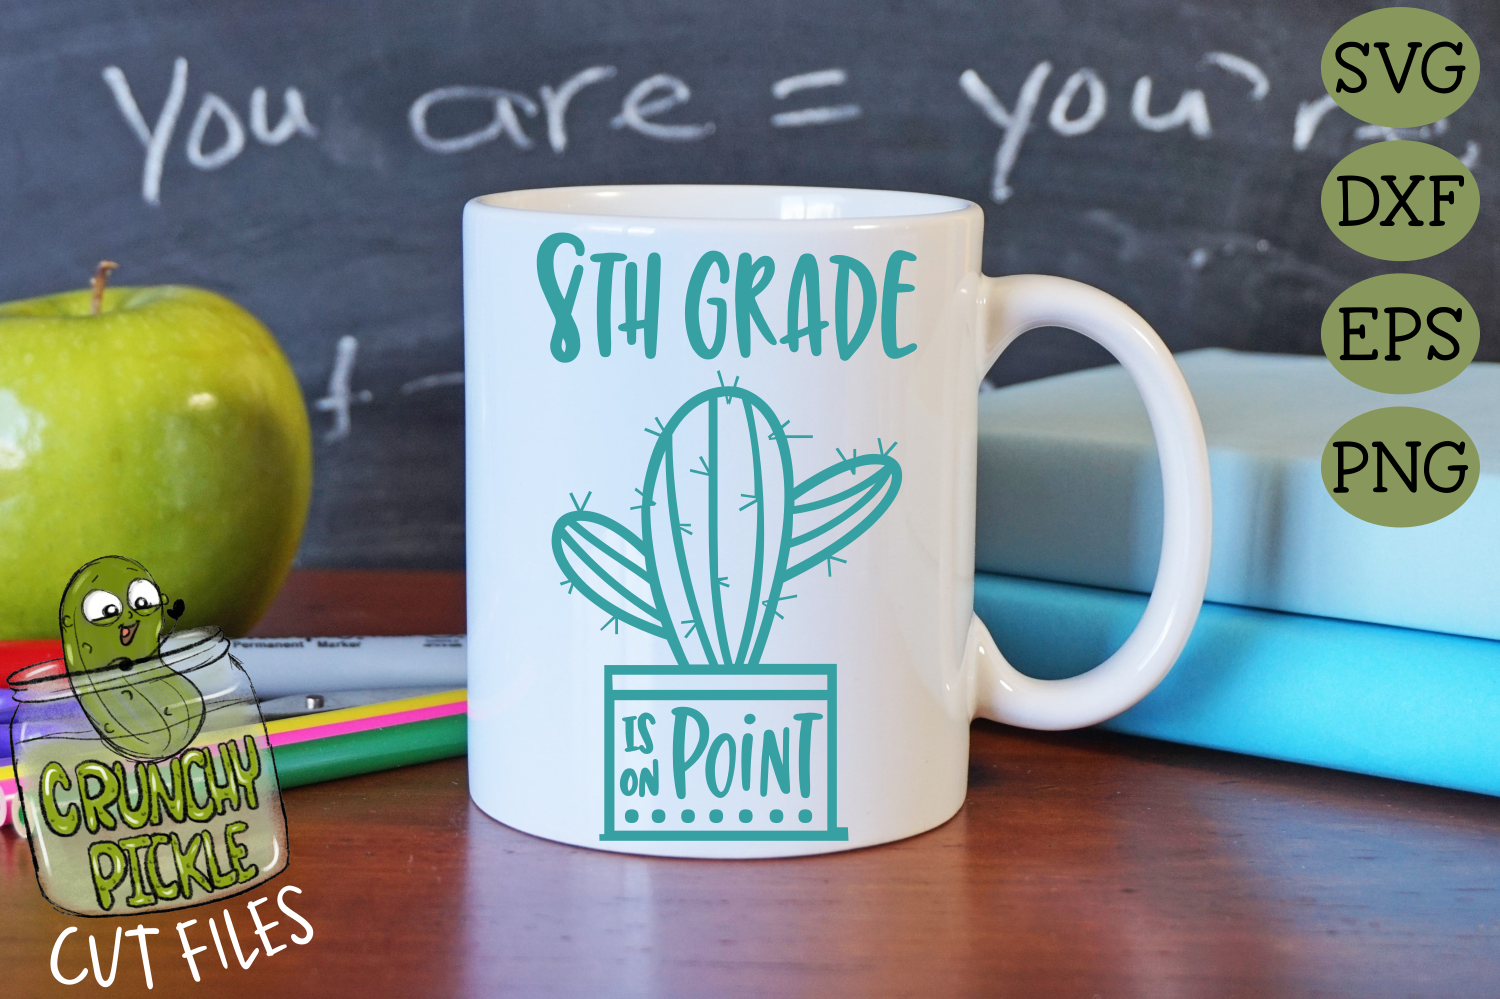 Cactus Middle School Grades on Point SVG example image 3